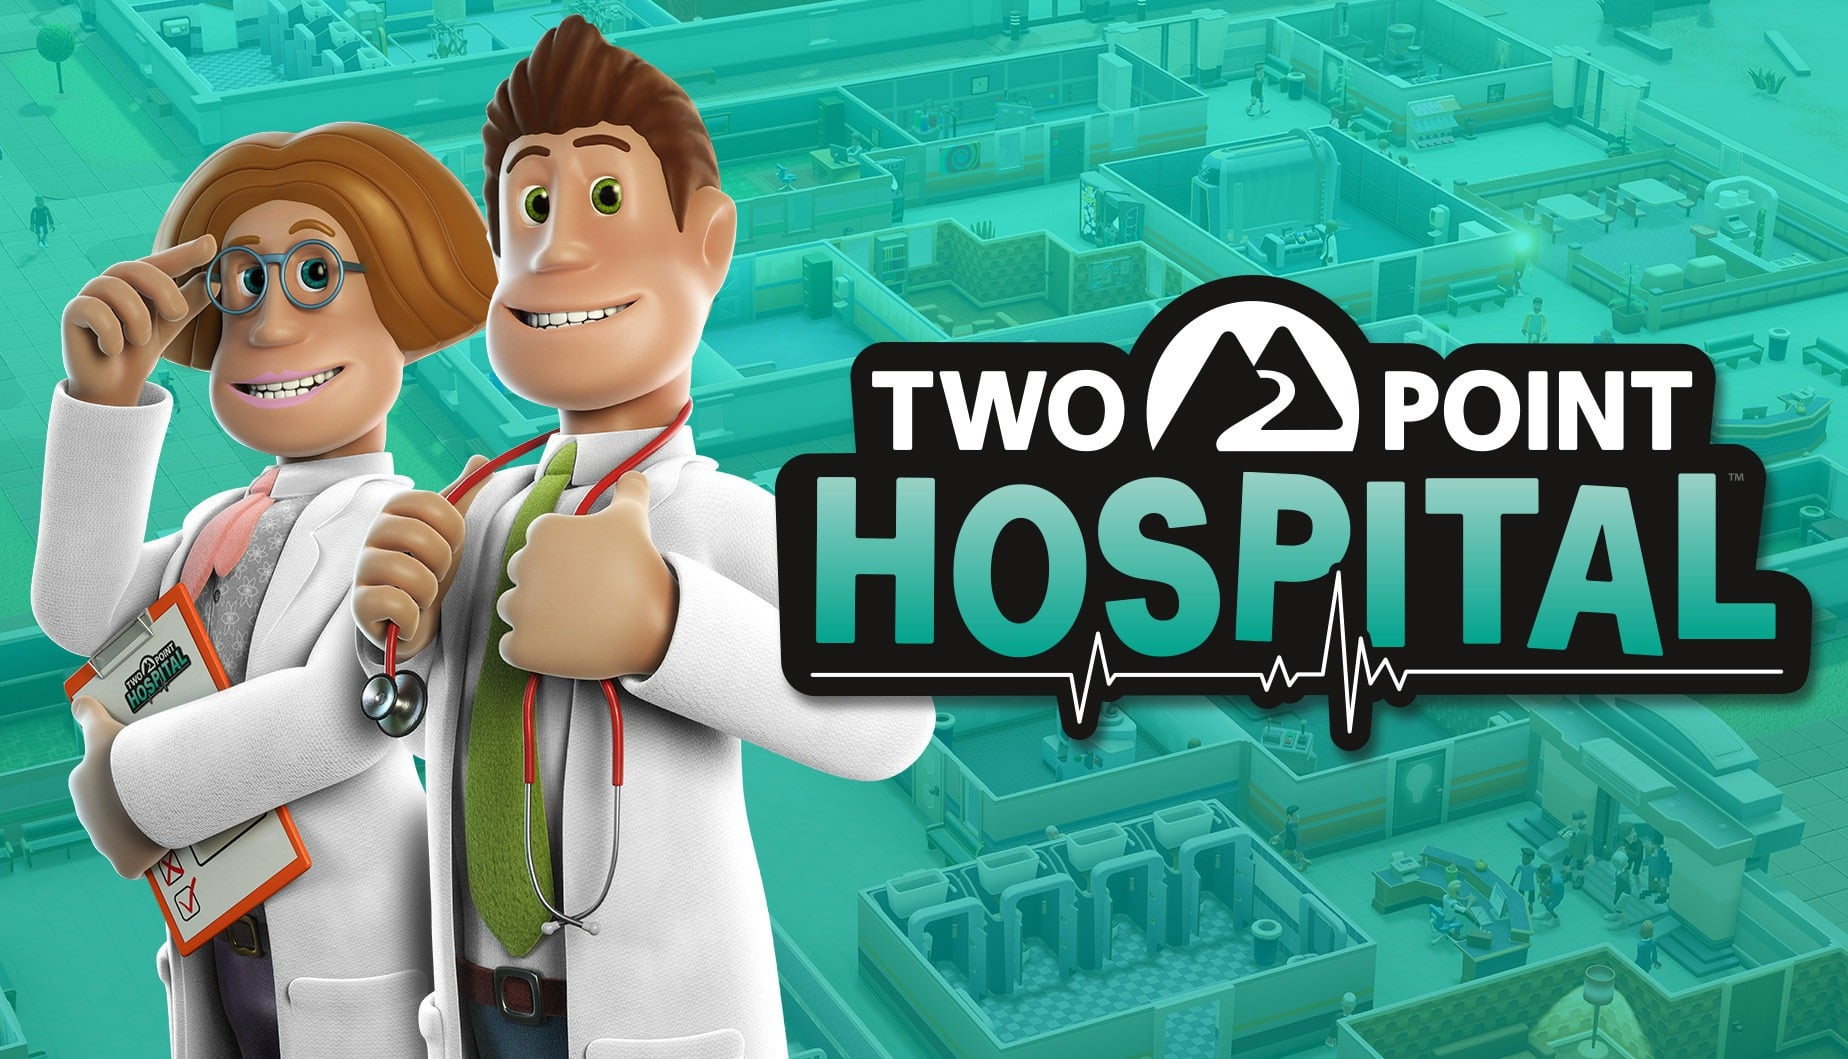 Two Point Hospital Console edition two point studios sega